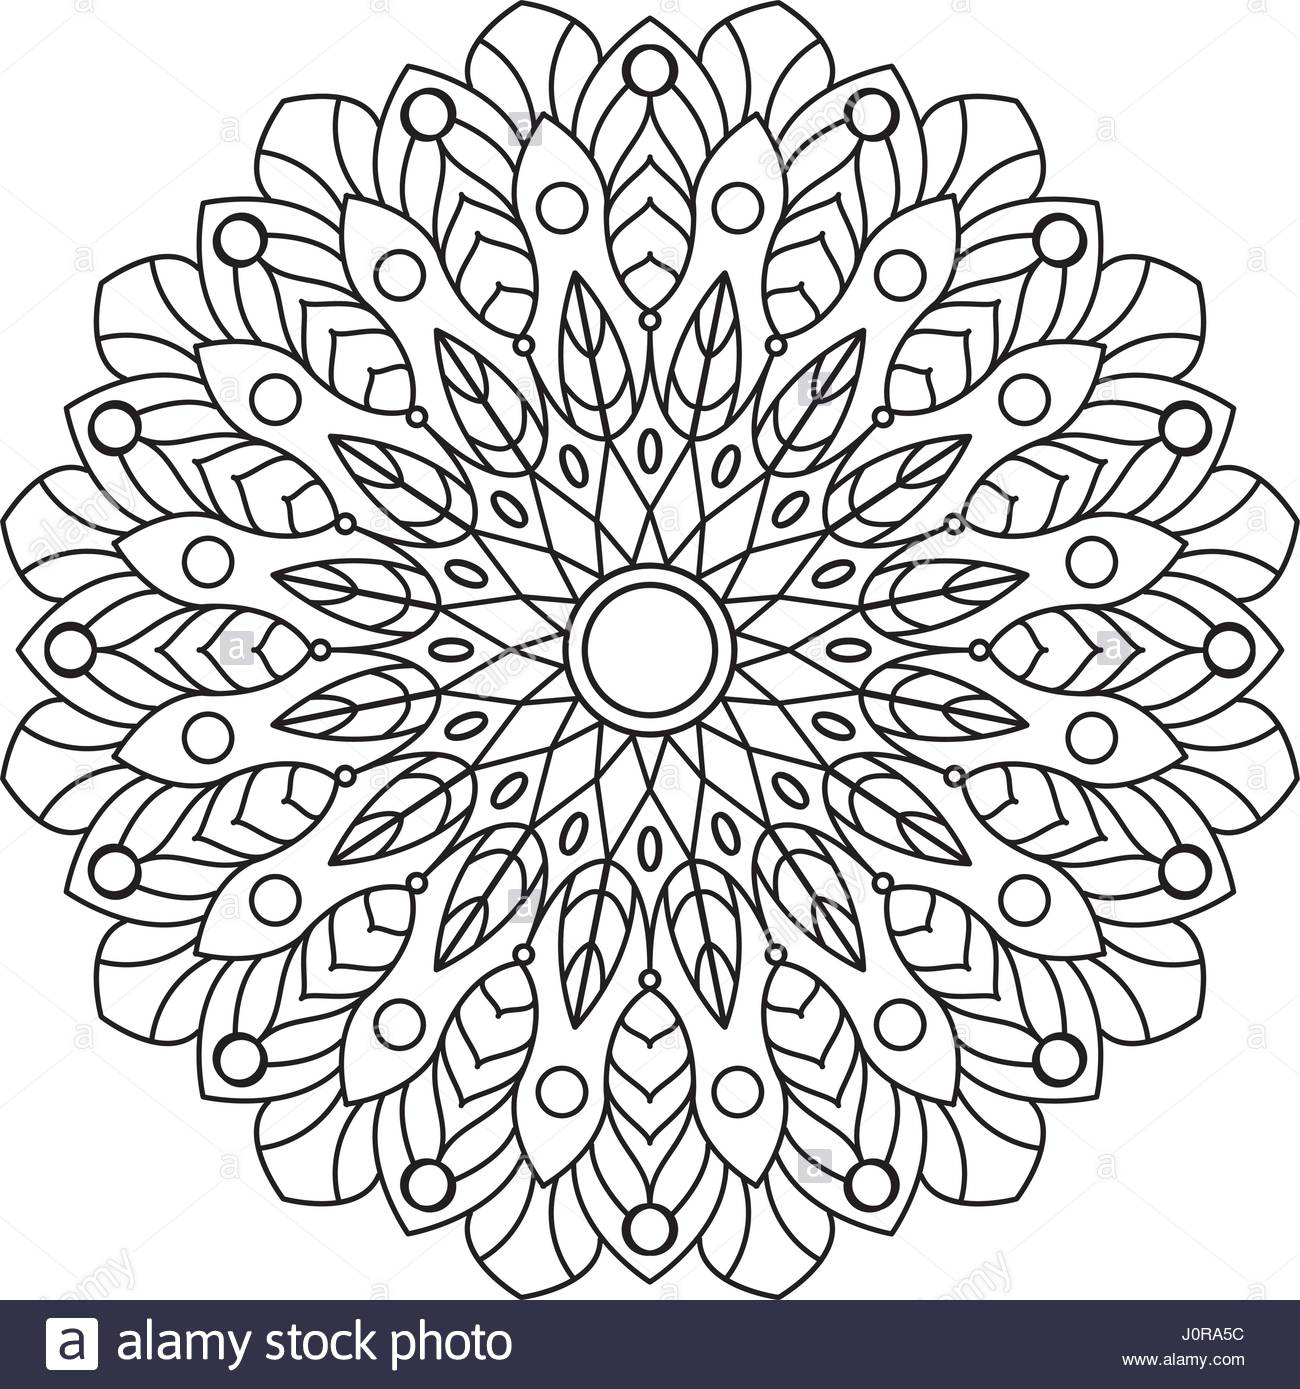 1300x1389 Coloring Book Mandala. Circle Lace Ornament, Round Ornamental